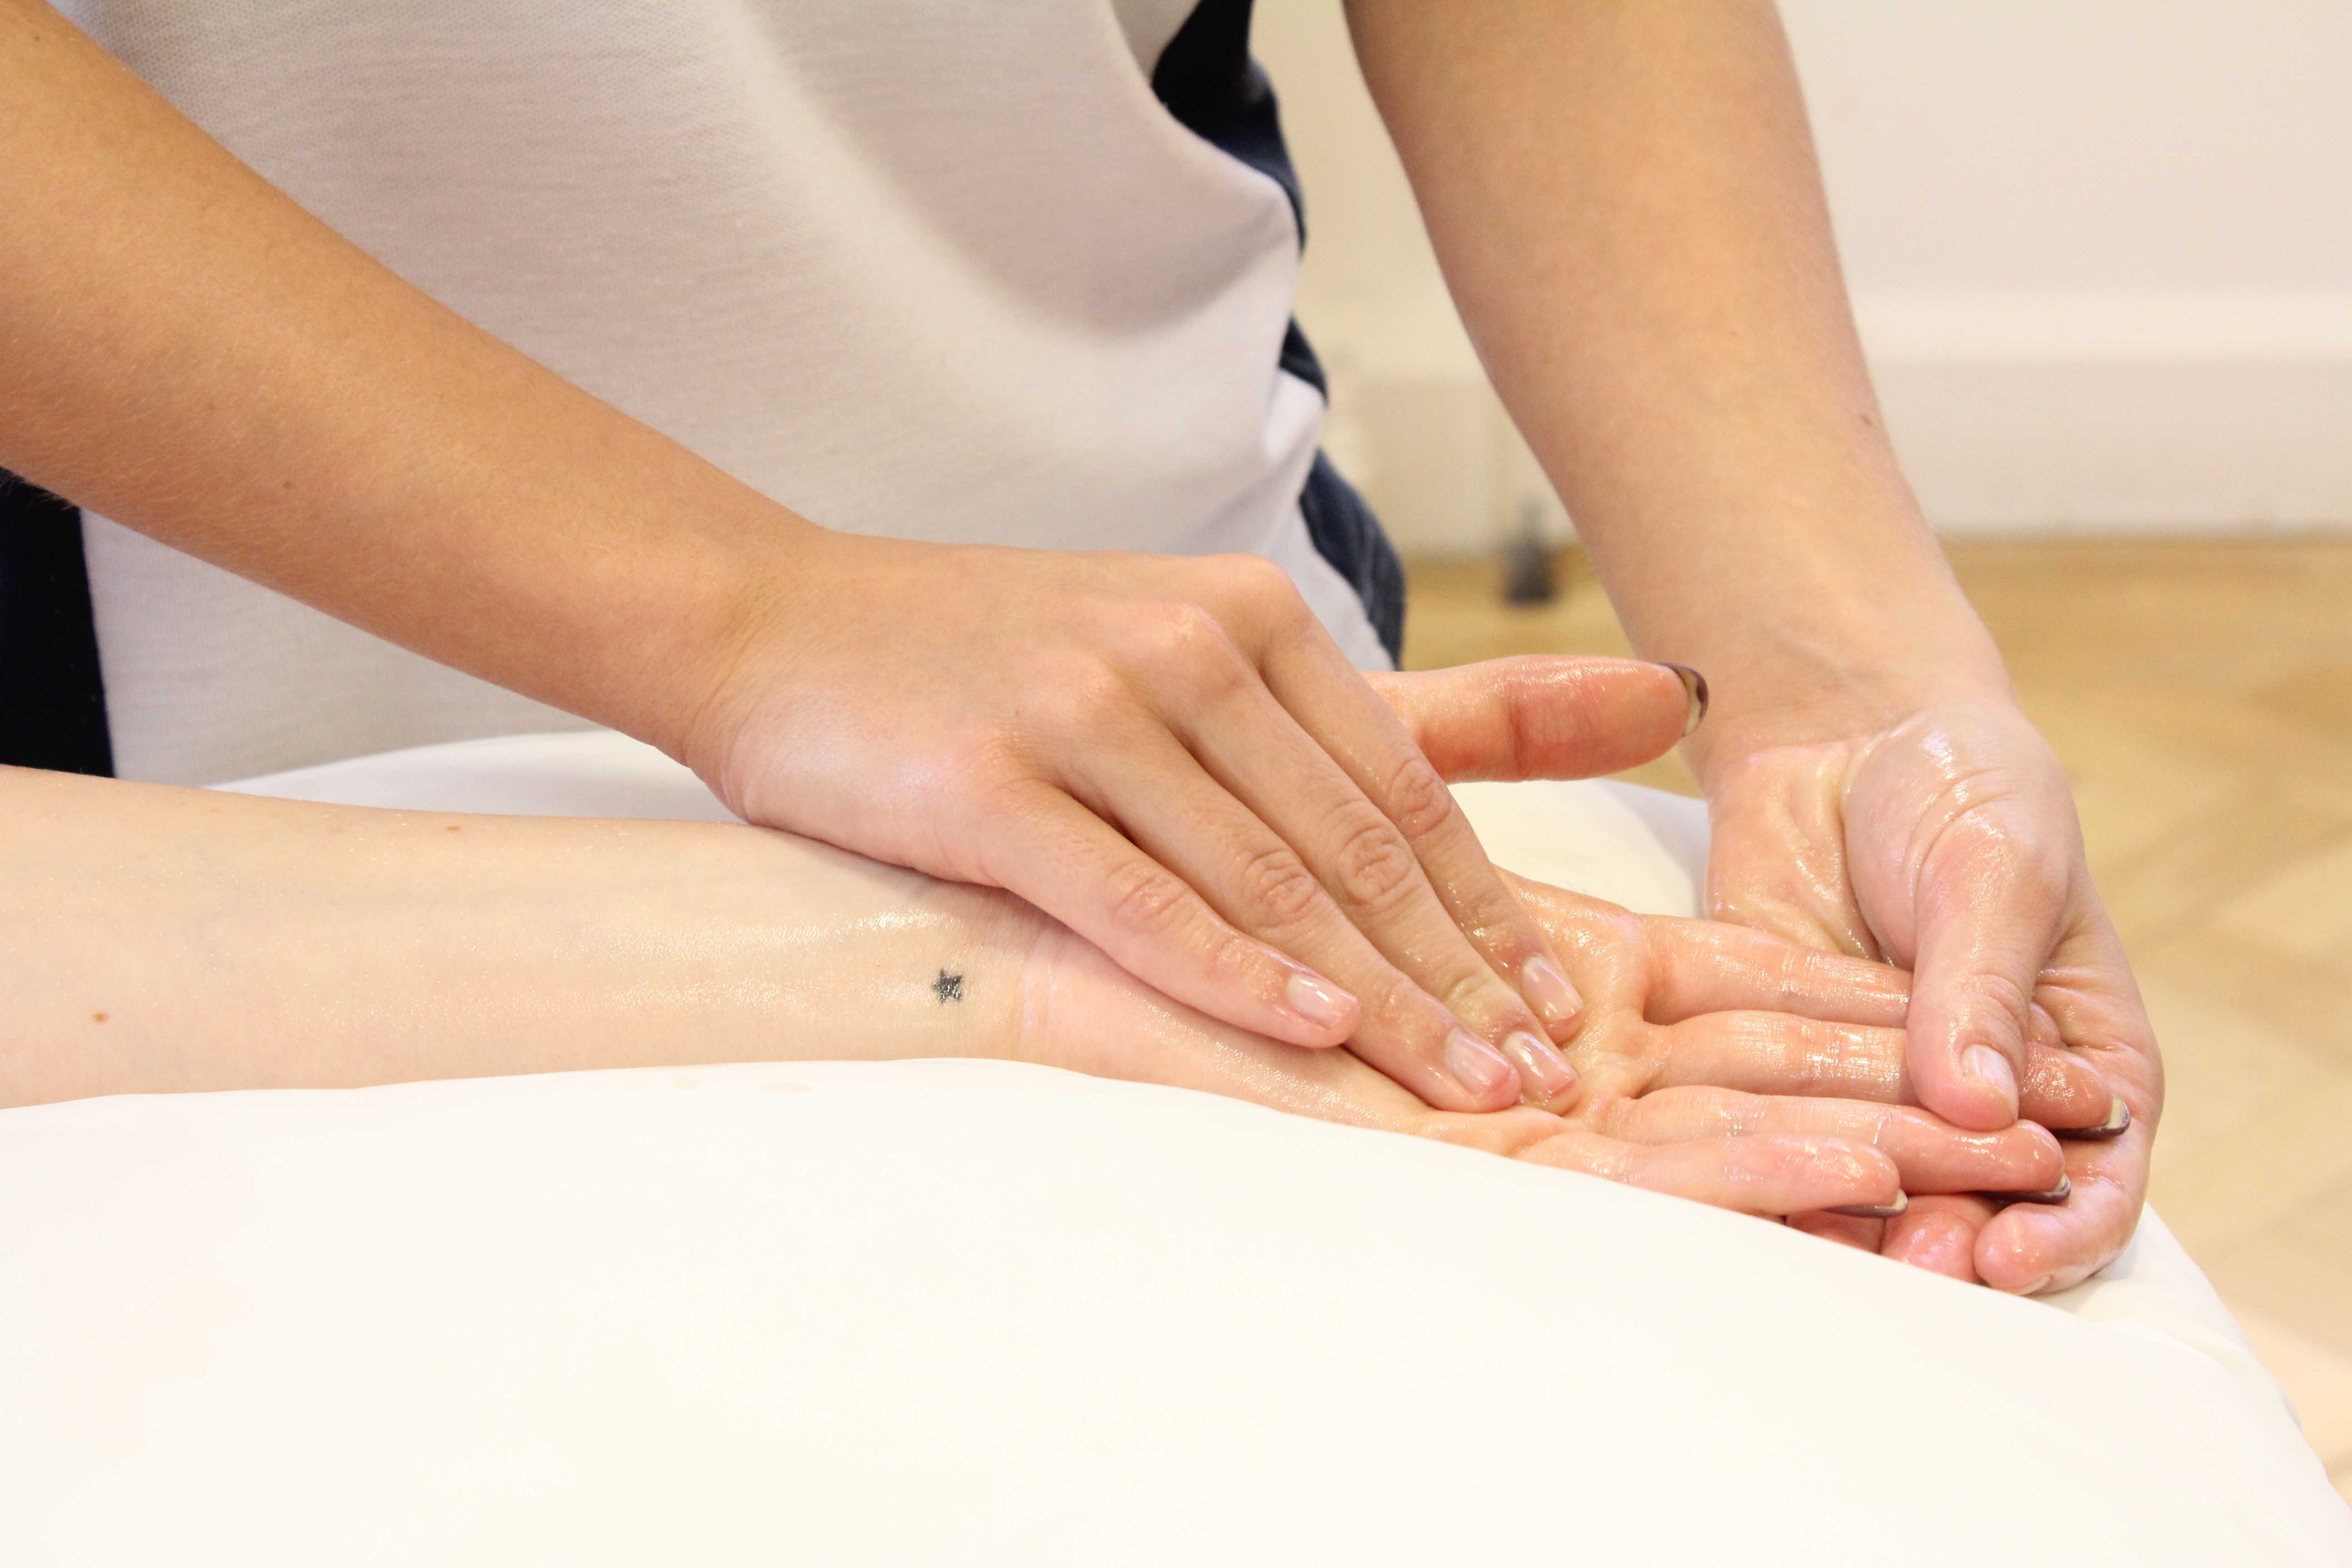 Soft tissue massage of th palma fascia to relieve pain and stiffness in the hand